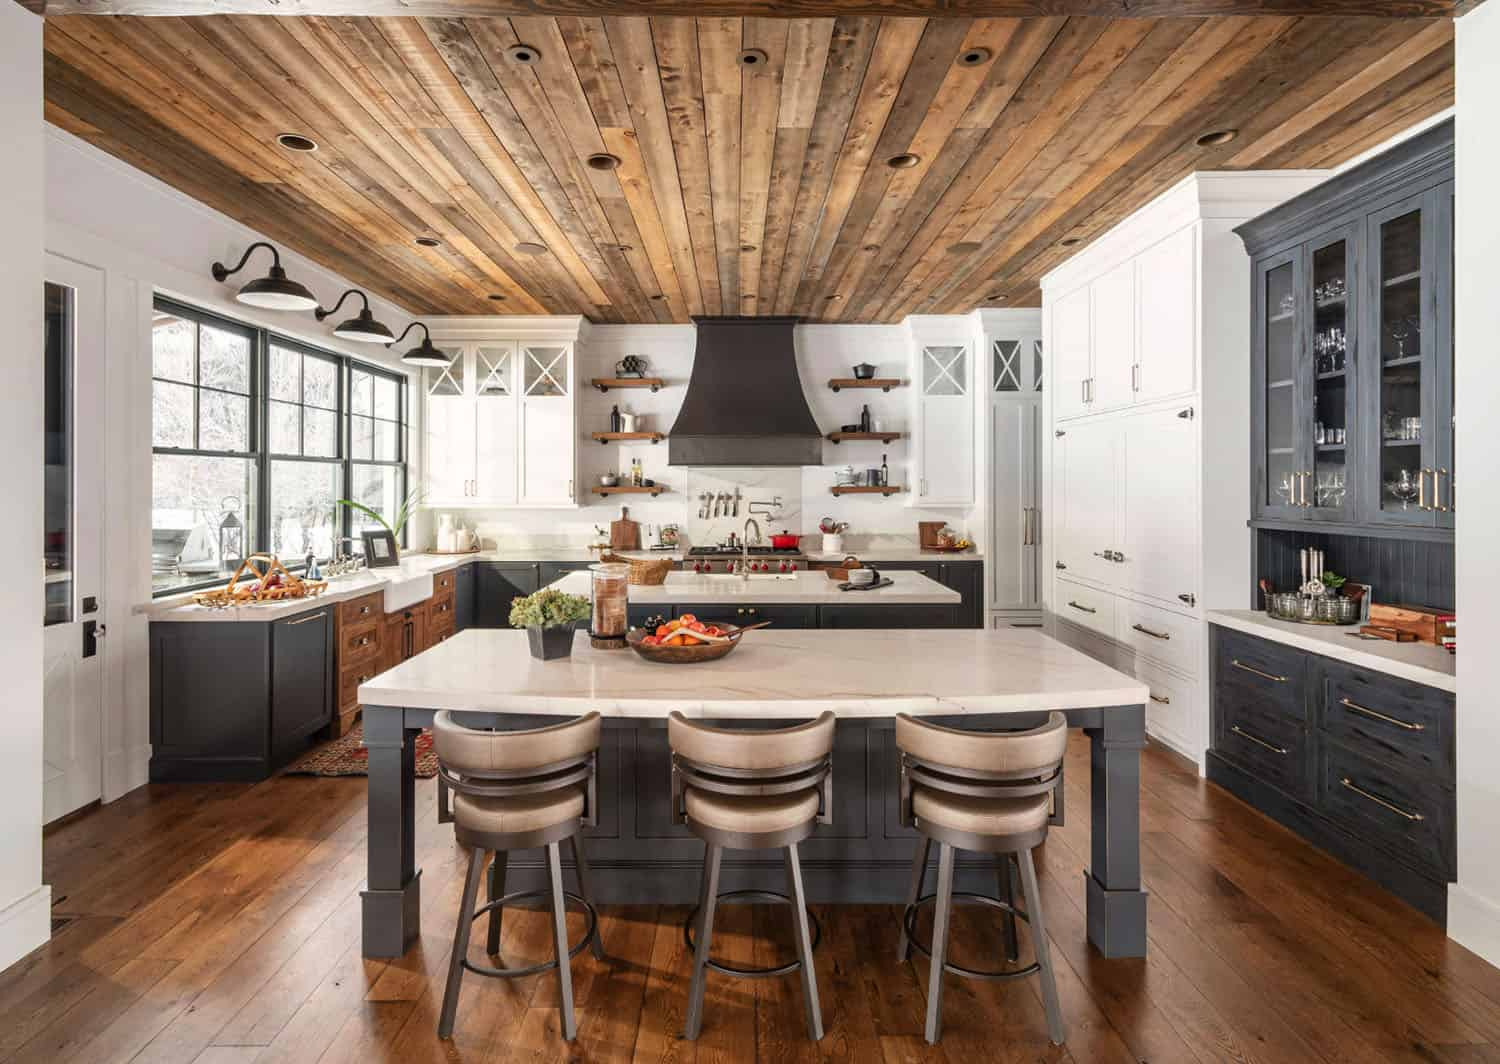 Tour a farmhouse mountain home boasting jaw-dropping details in Utah